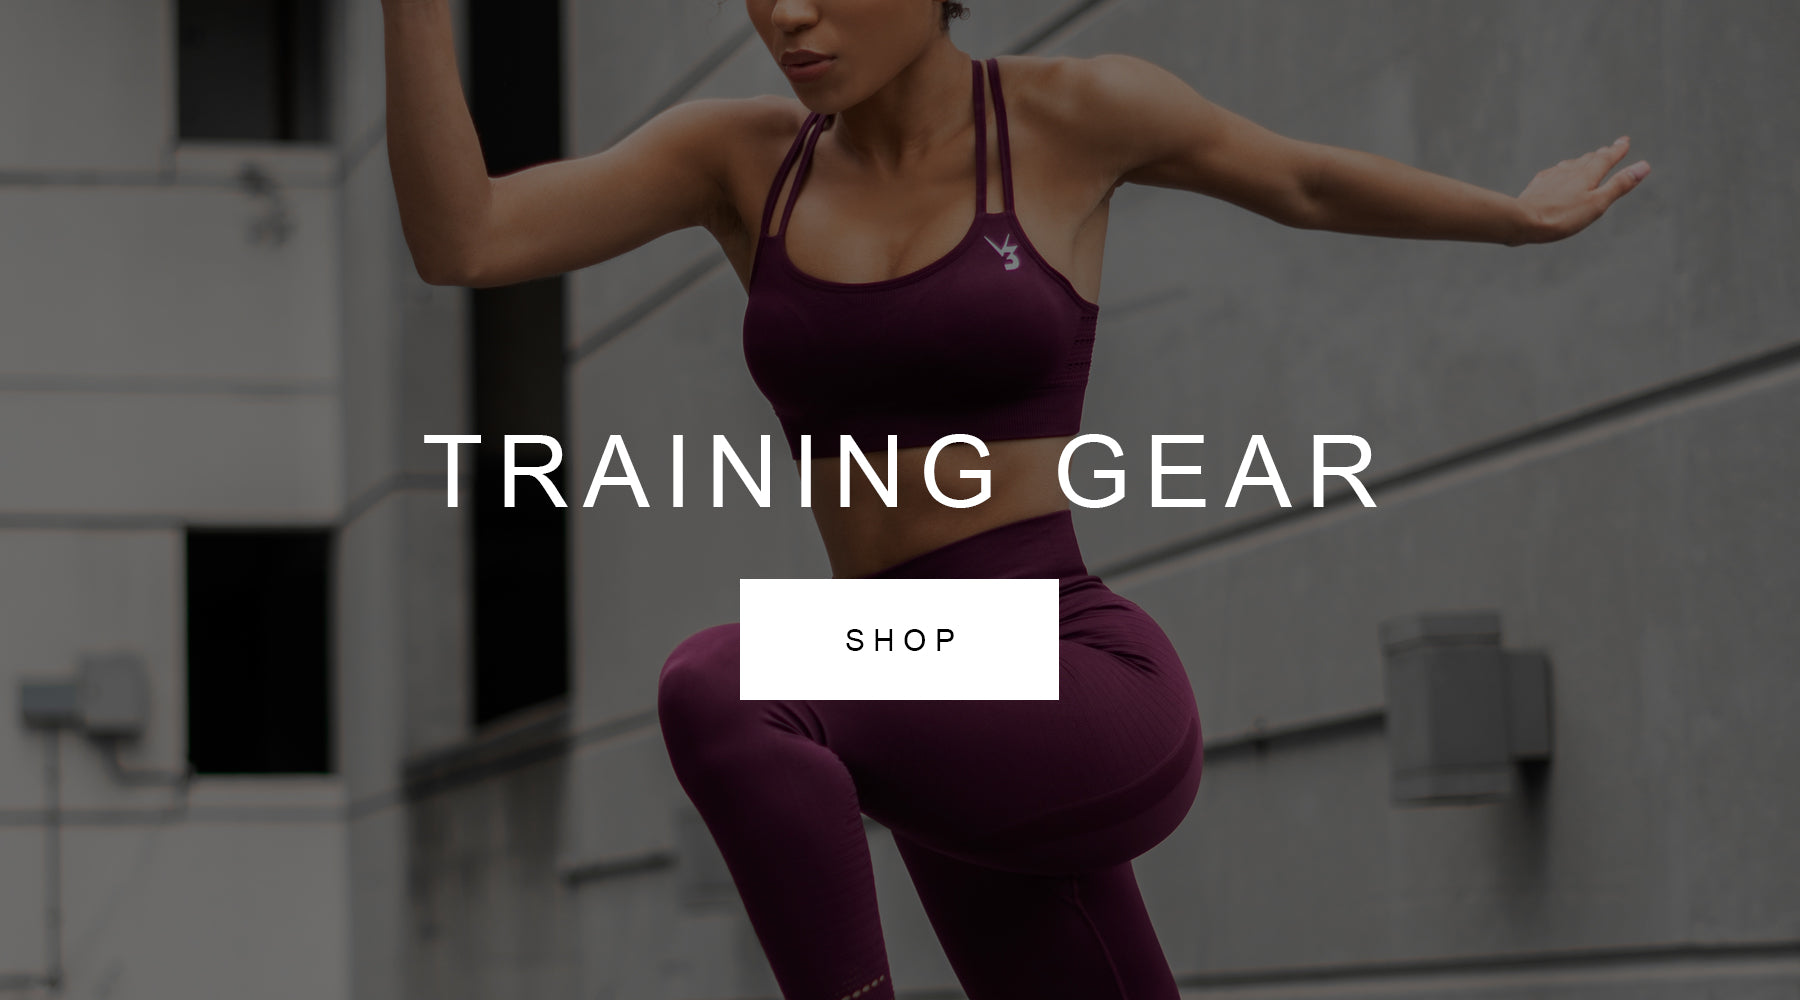 shop womens seamless fitness leggings and workout gym sports bra clothing